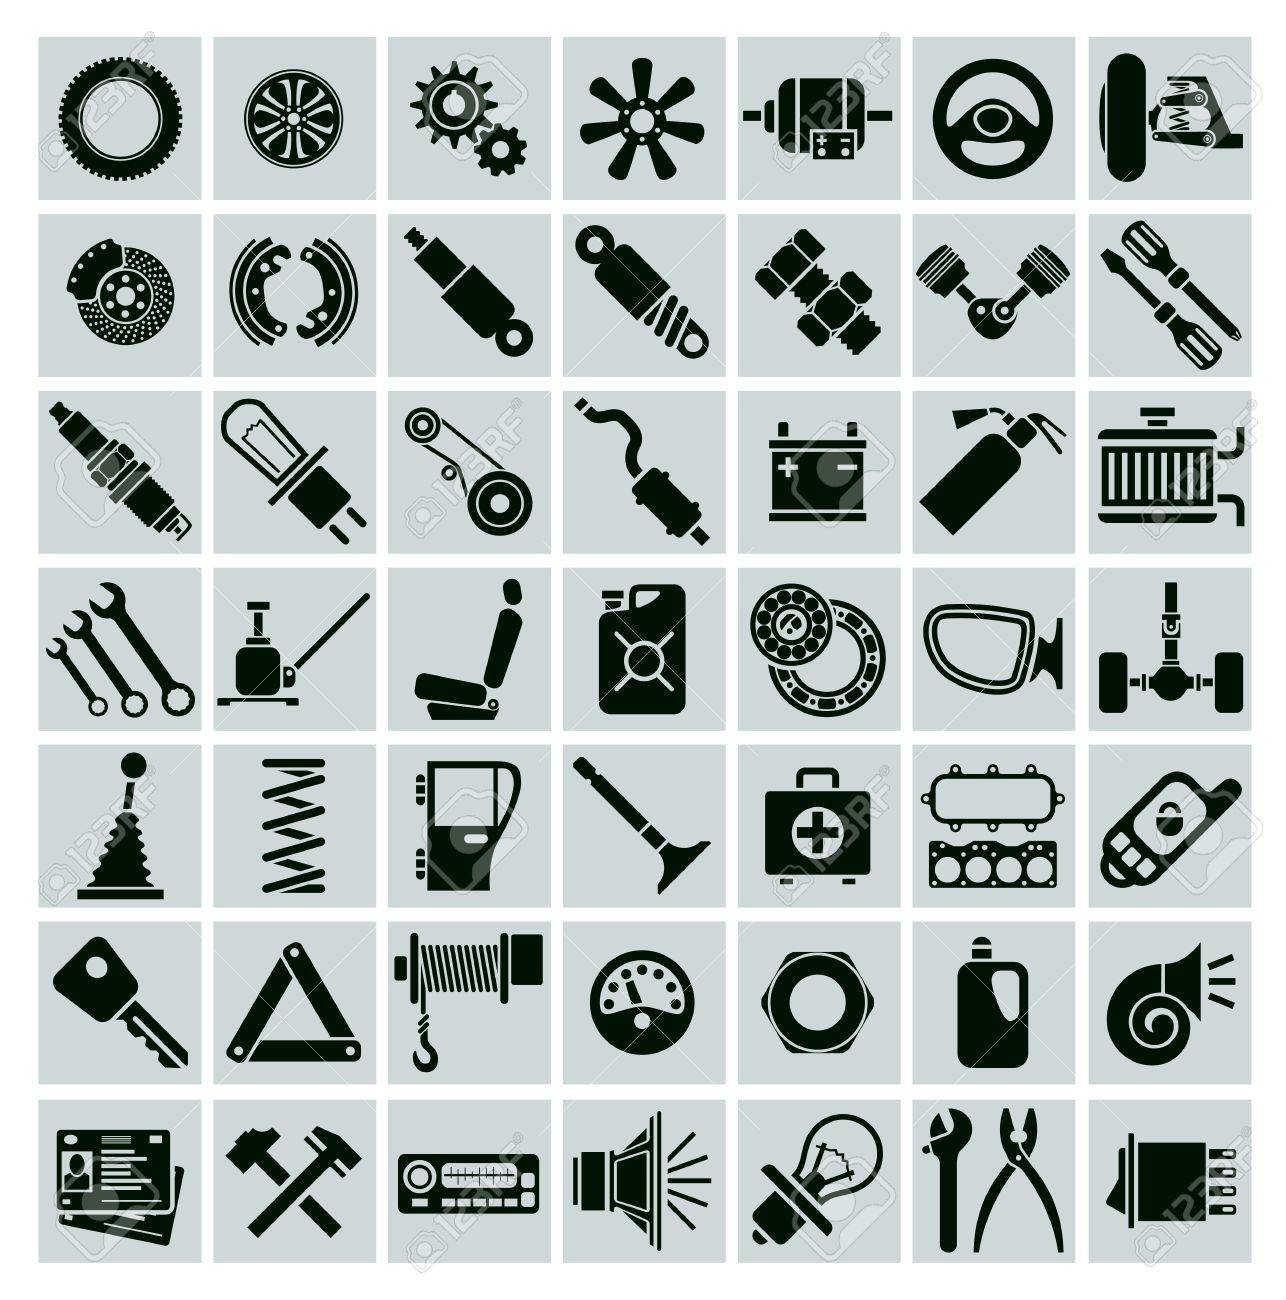 Car Parts Tools And Accessories Set Of Vector Icons Royalty Free